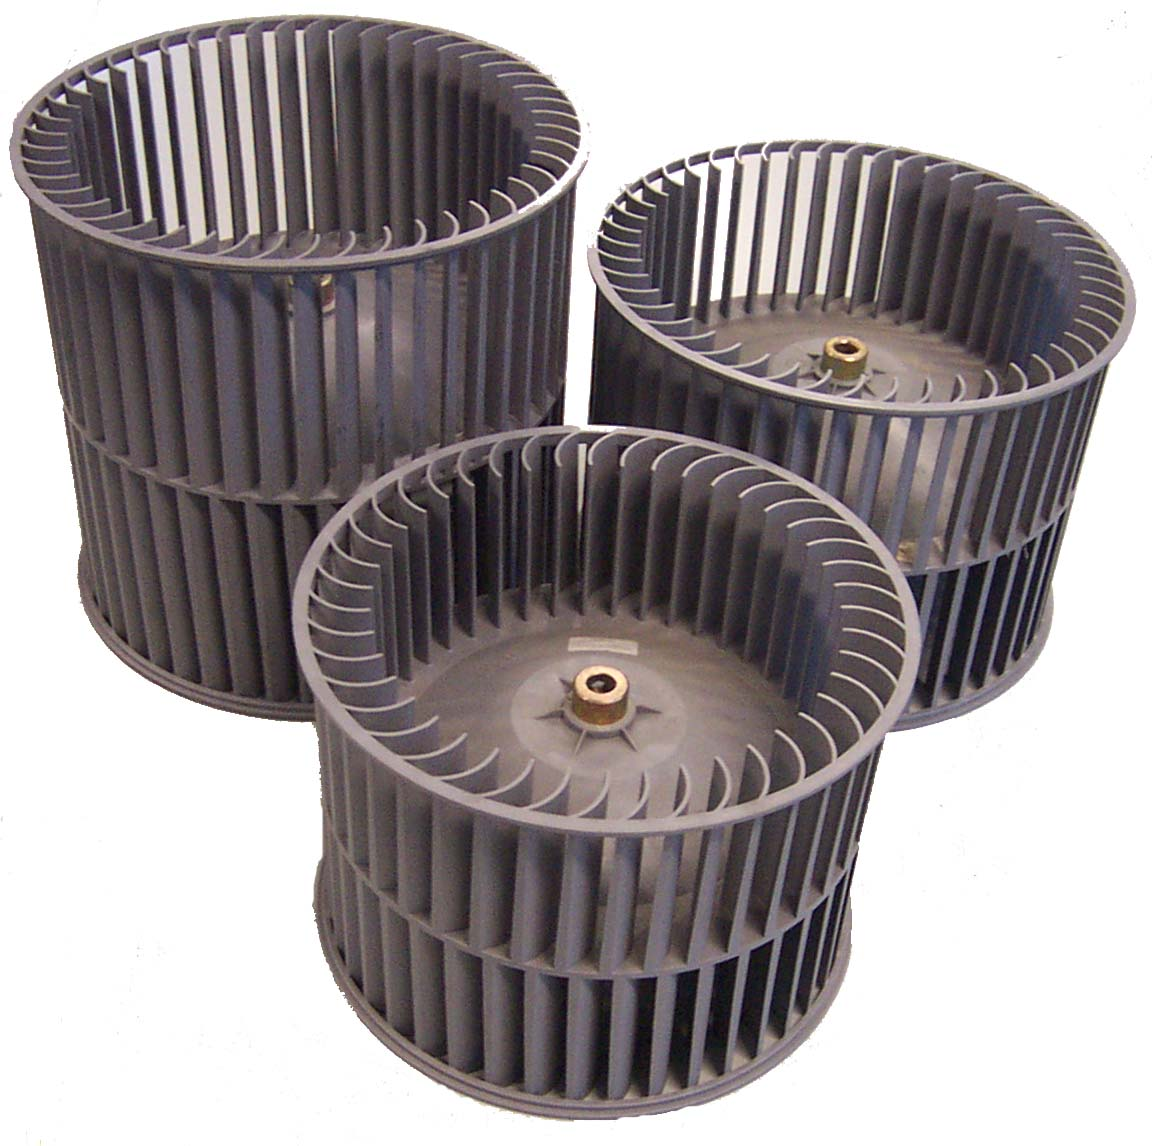 Oven Fans And Blowers : Industrial oem fans blowers ventilators